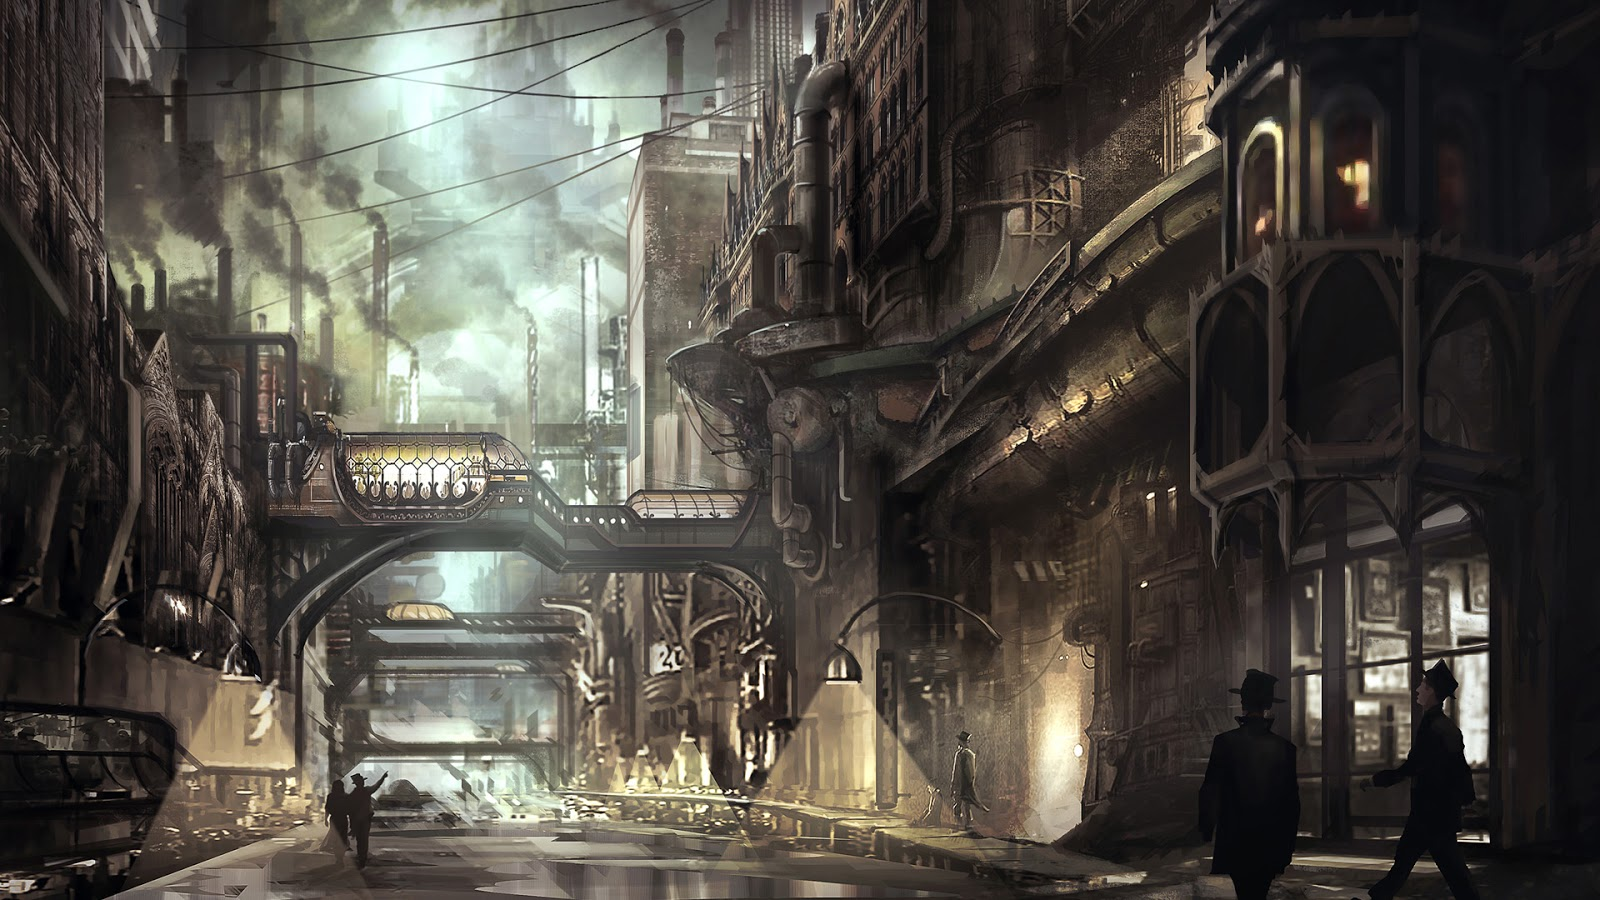 Gallery For gt Steampunk City Landscape